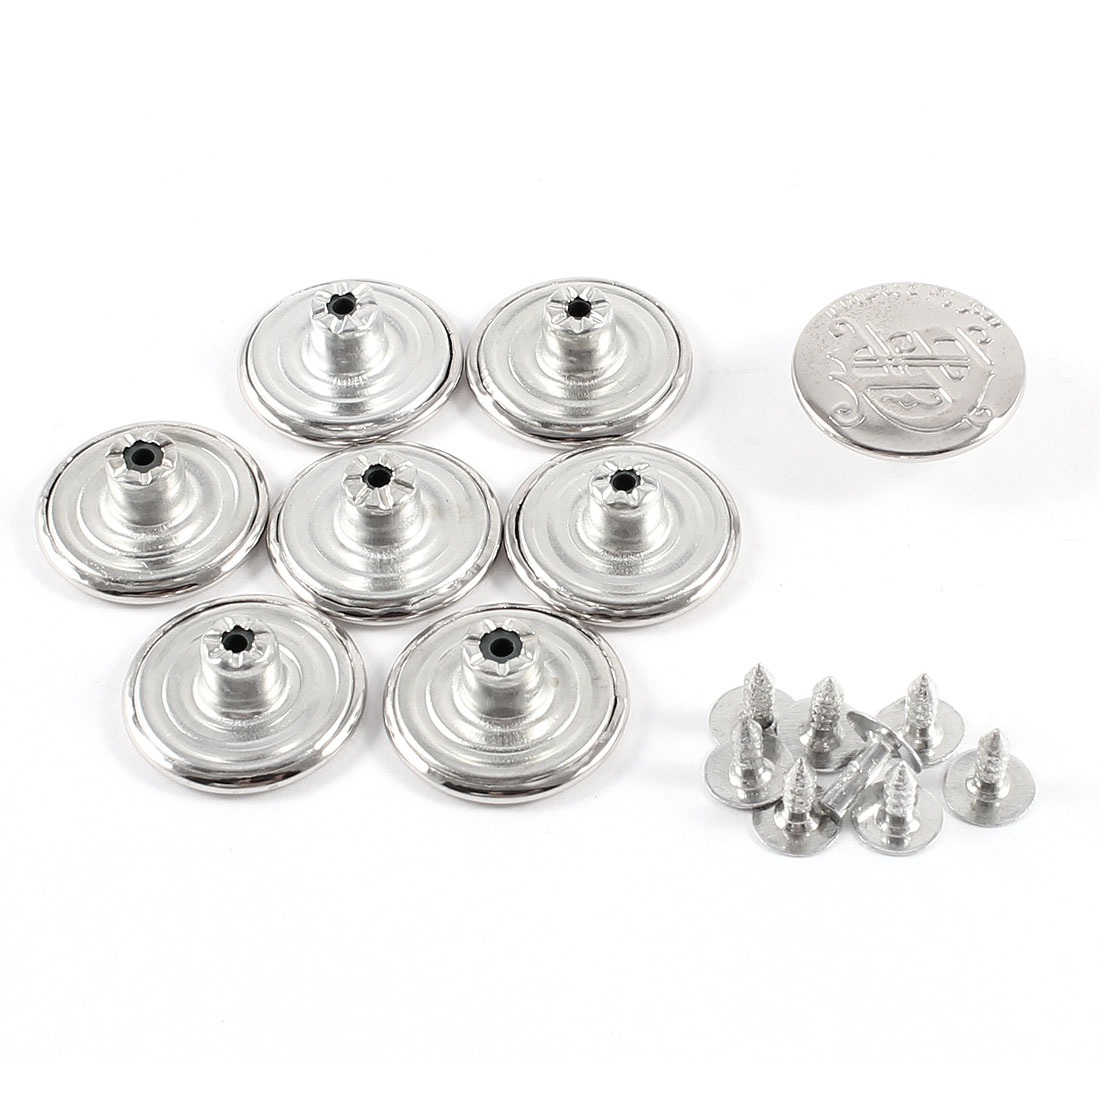 "Replacement Carved Round Shaped 0.8"" Dia Jeans Buttons Silver Tone 8 Pcs"